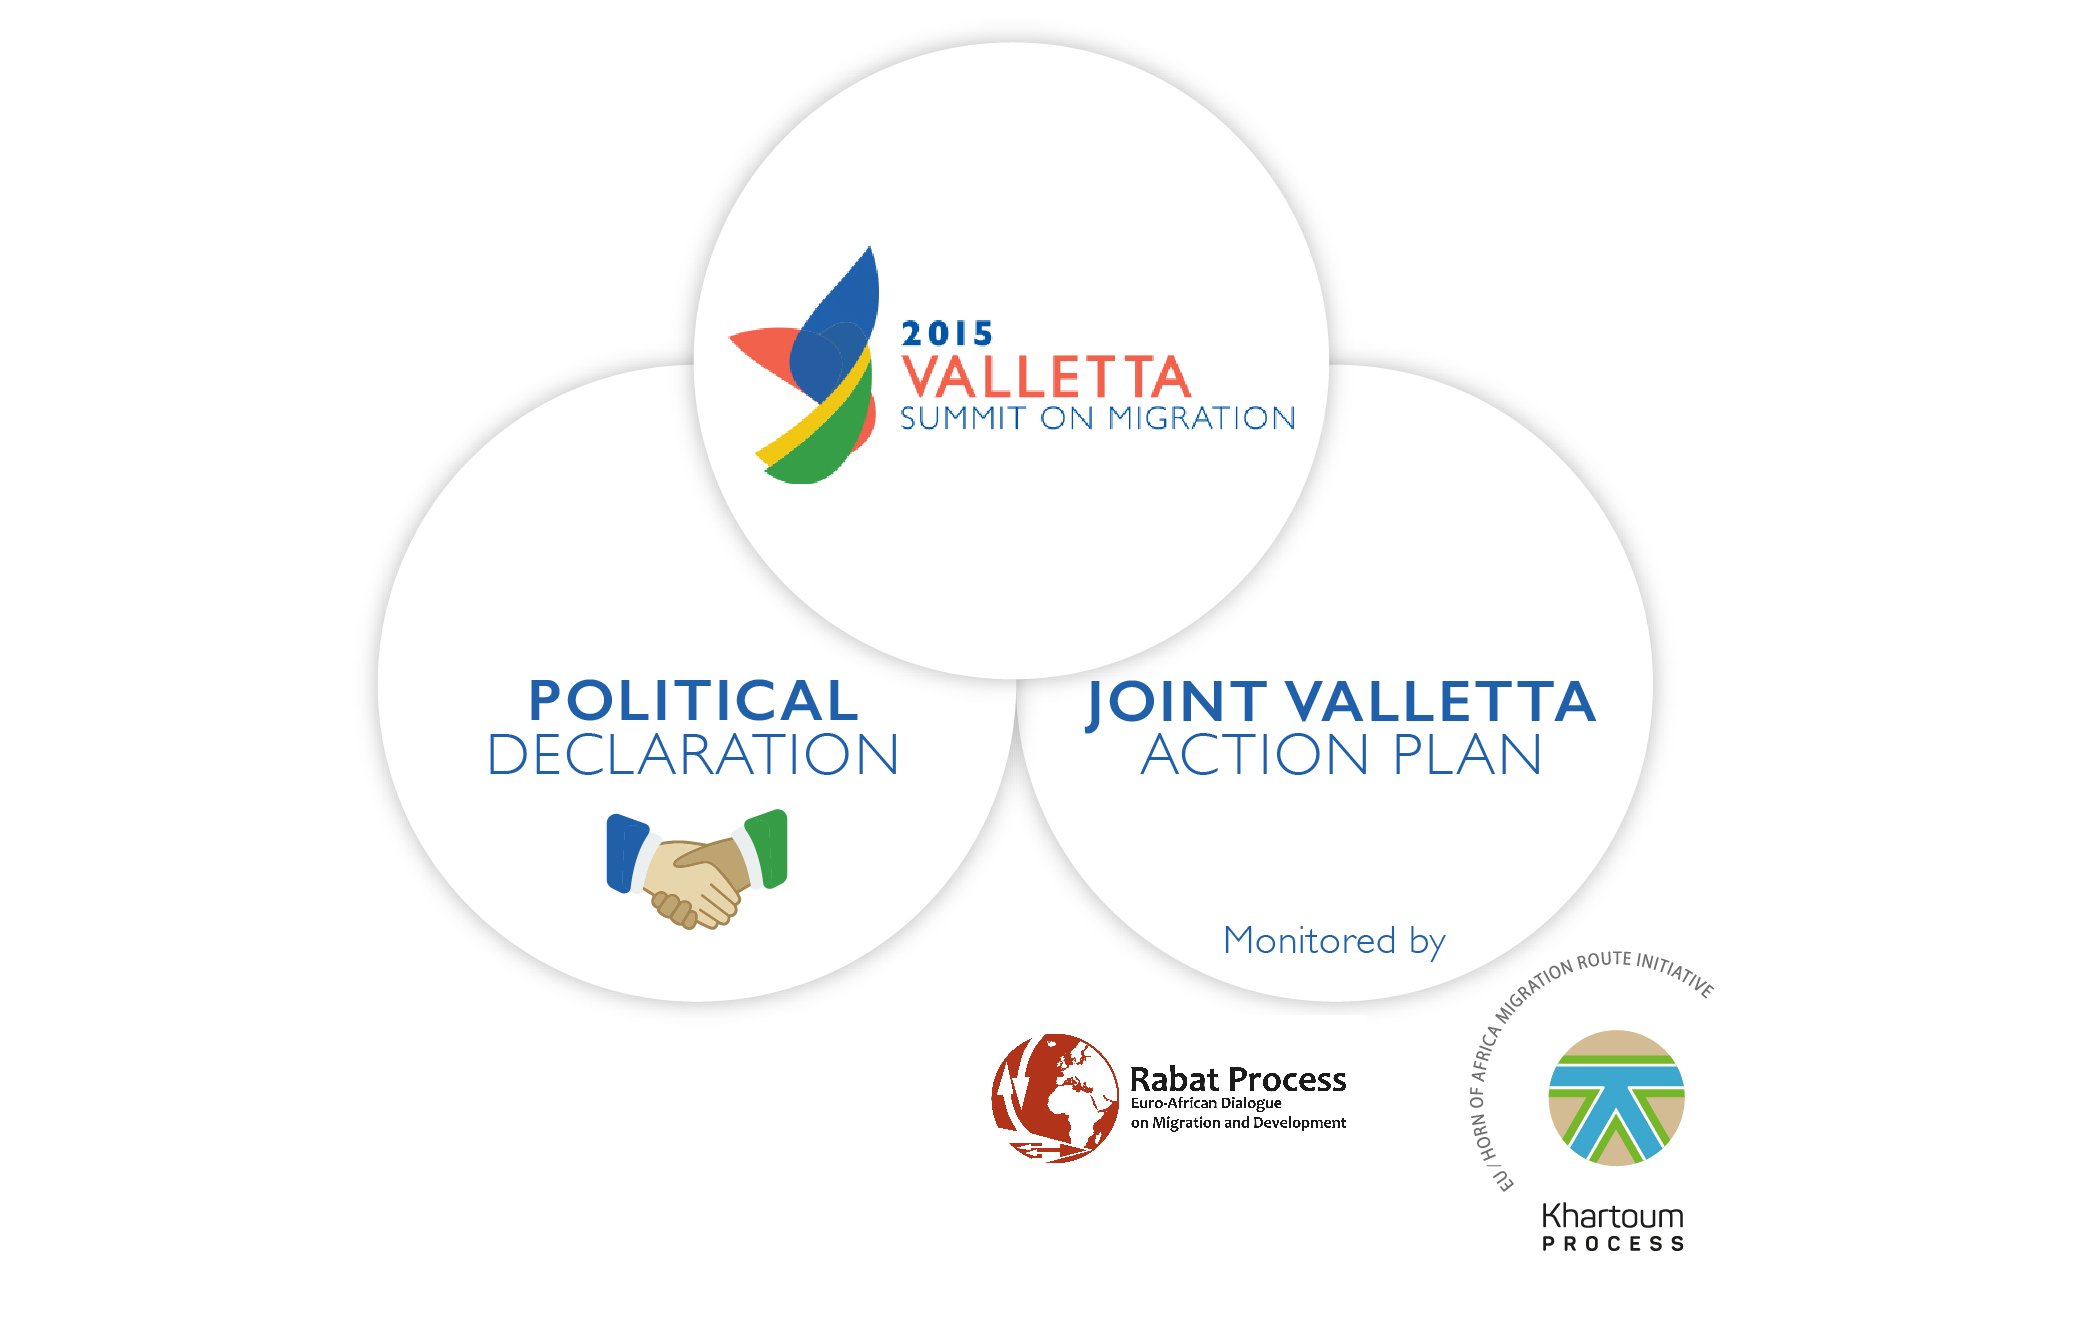 What is the Joint Valletta Action Plan?